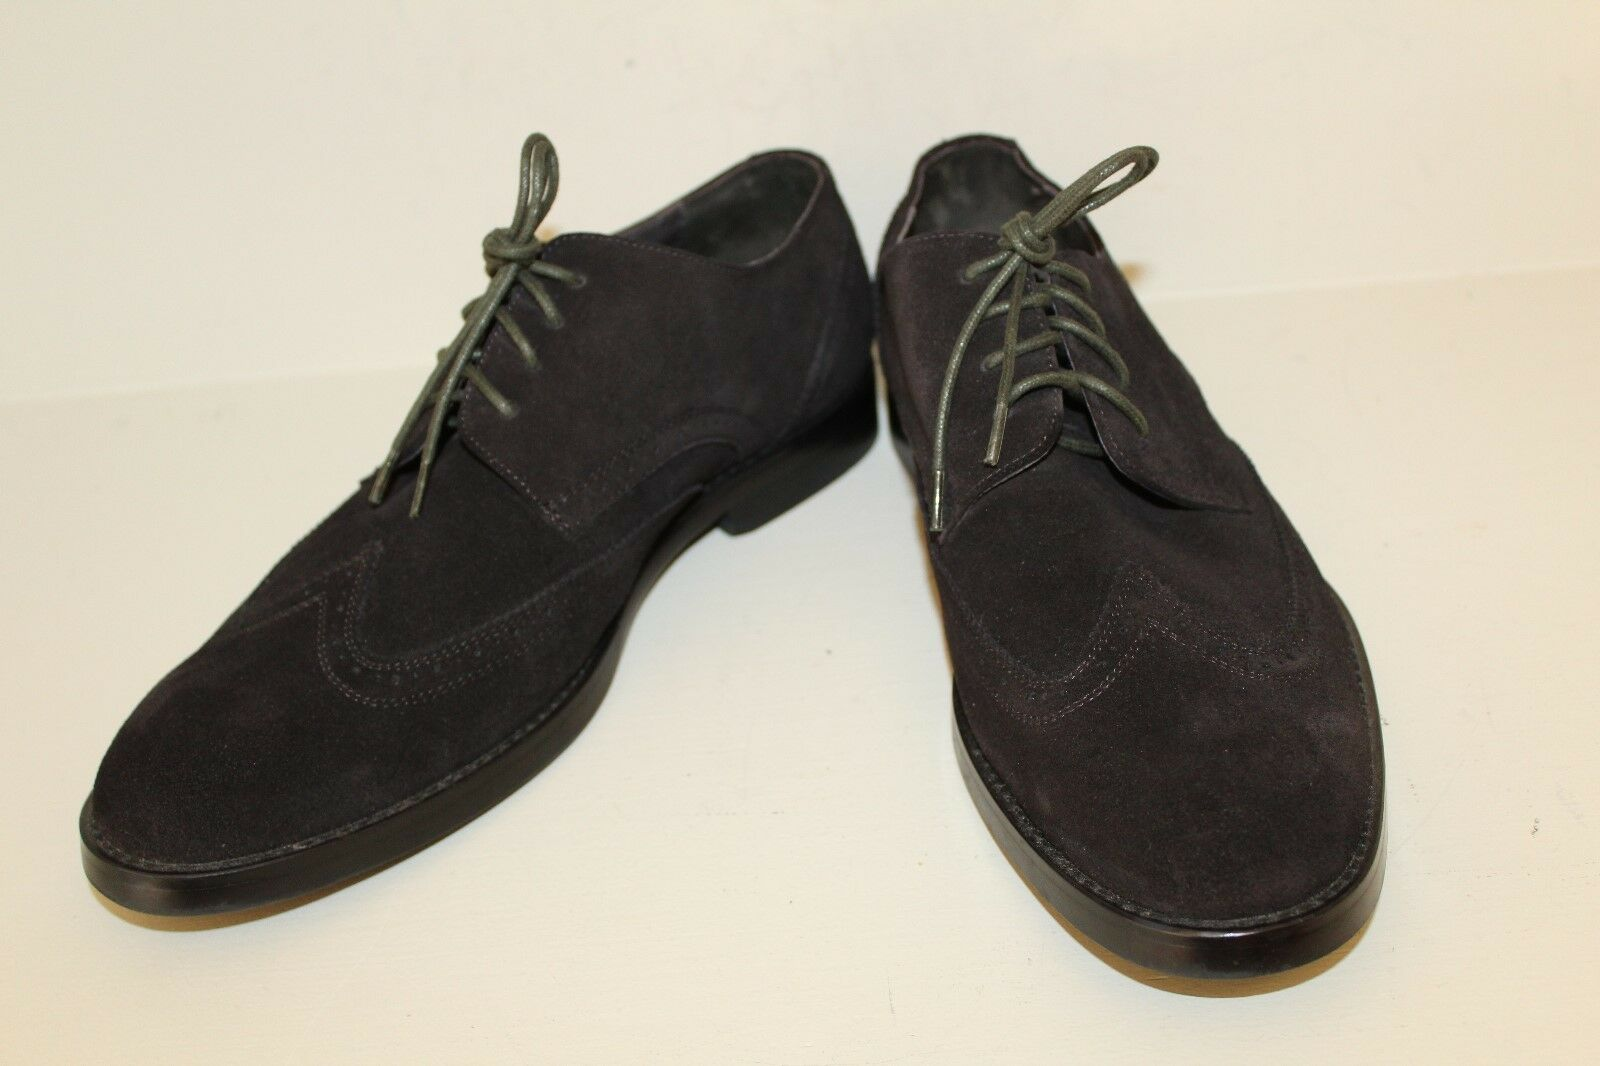 Joseph Abboud Uomo Wingtip Oxford Shoes Sz Sz Sz 10 D Robert Chocolate Suede Pelle 1a6be3